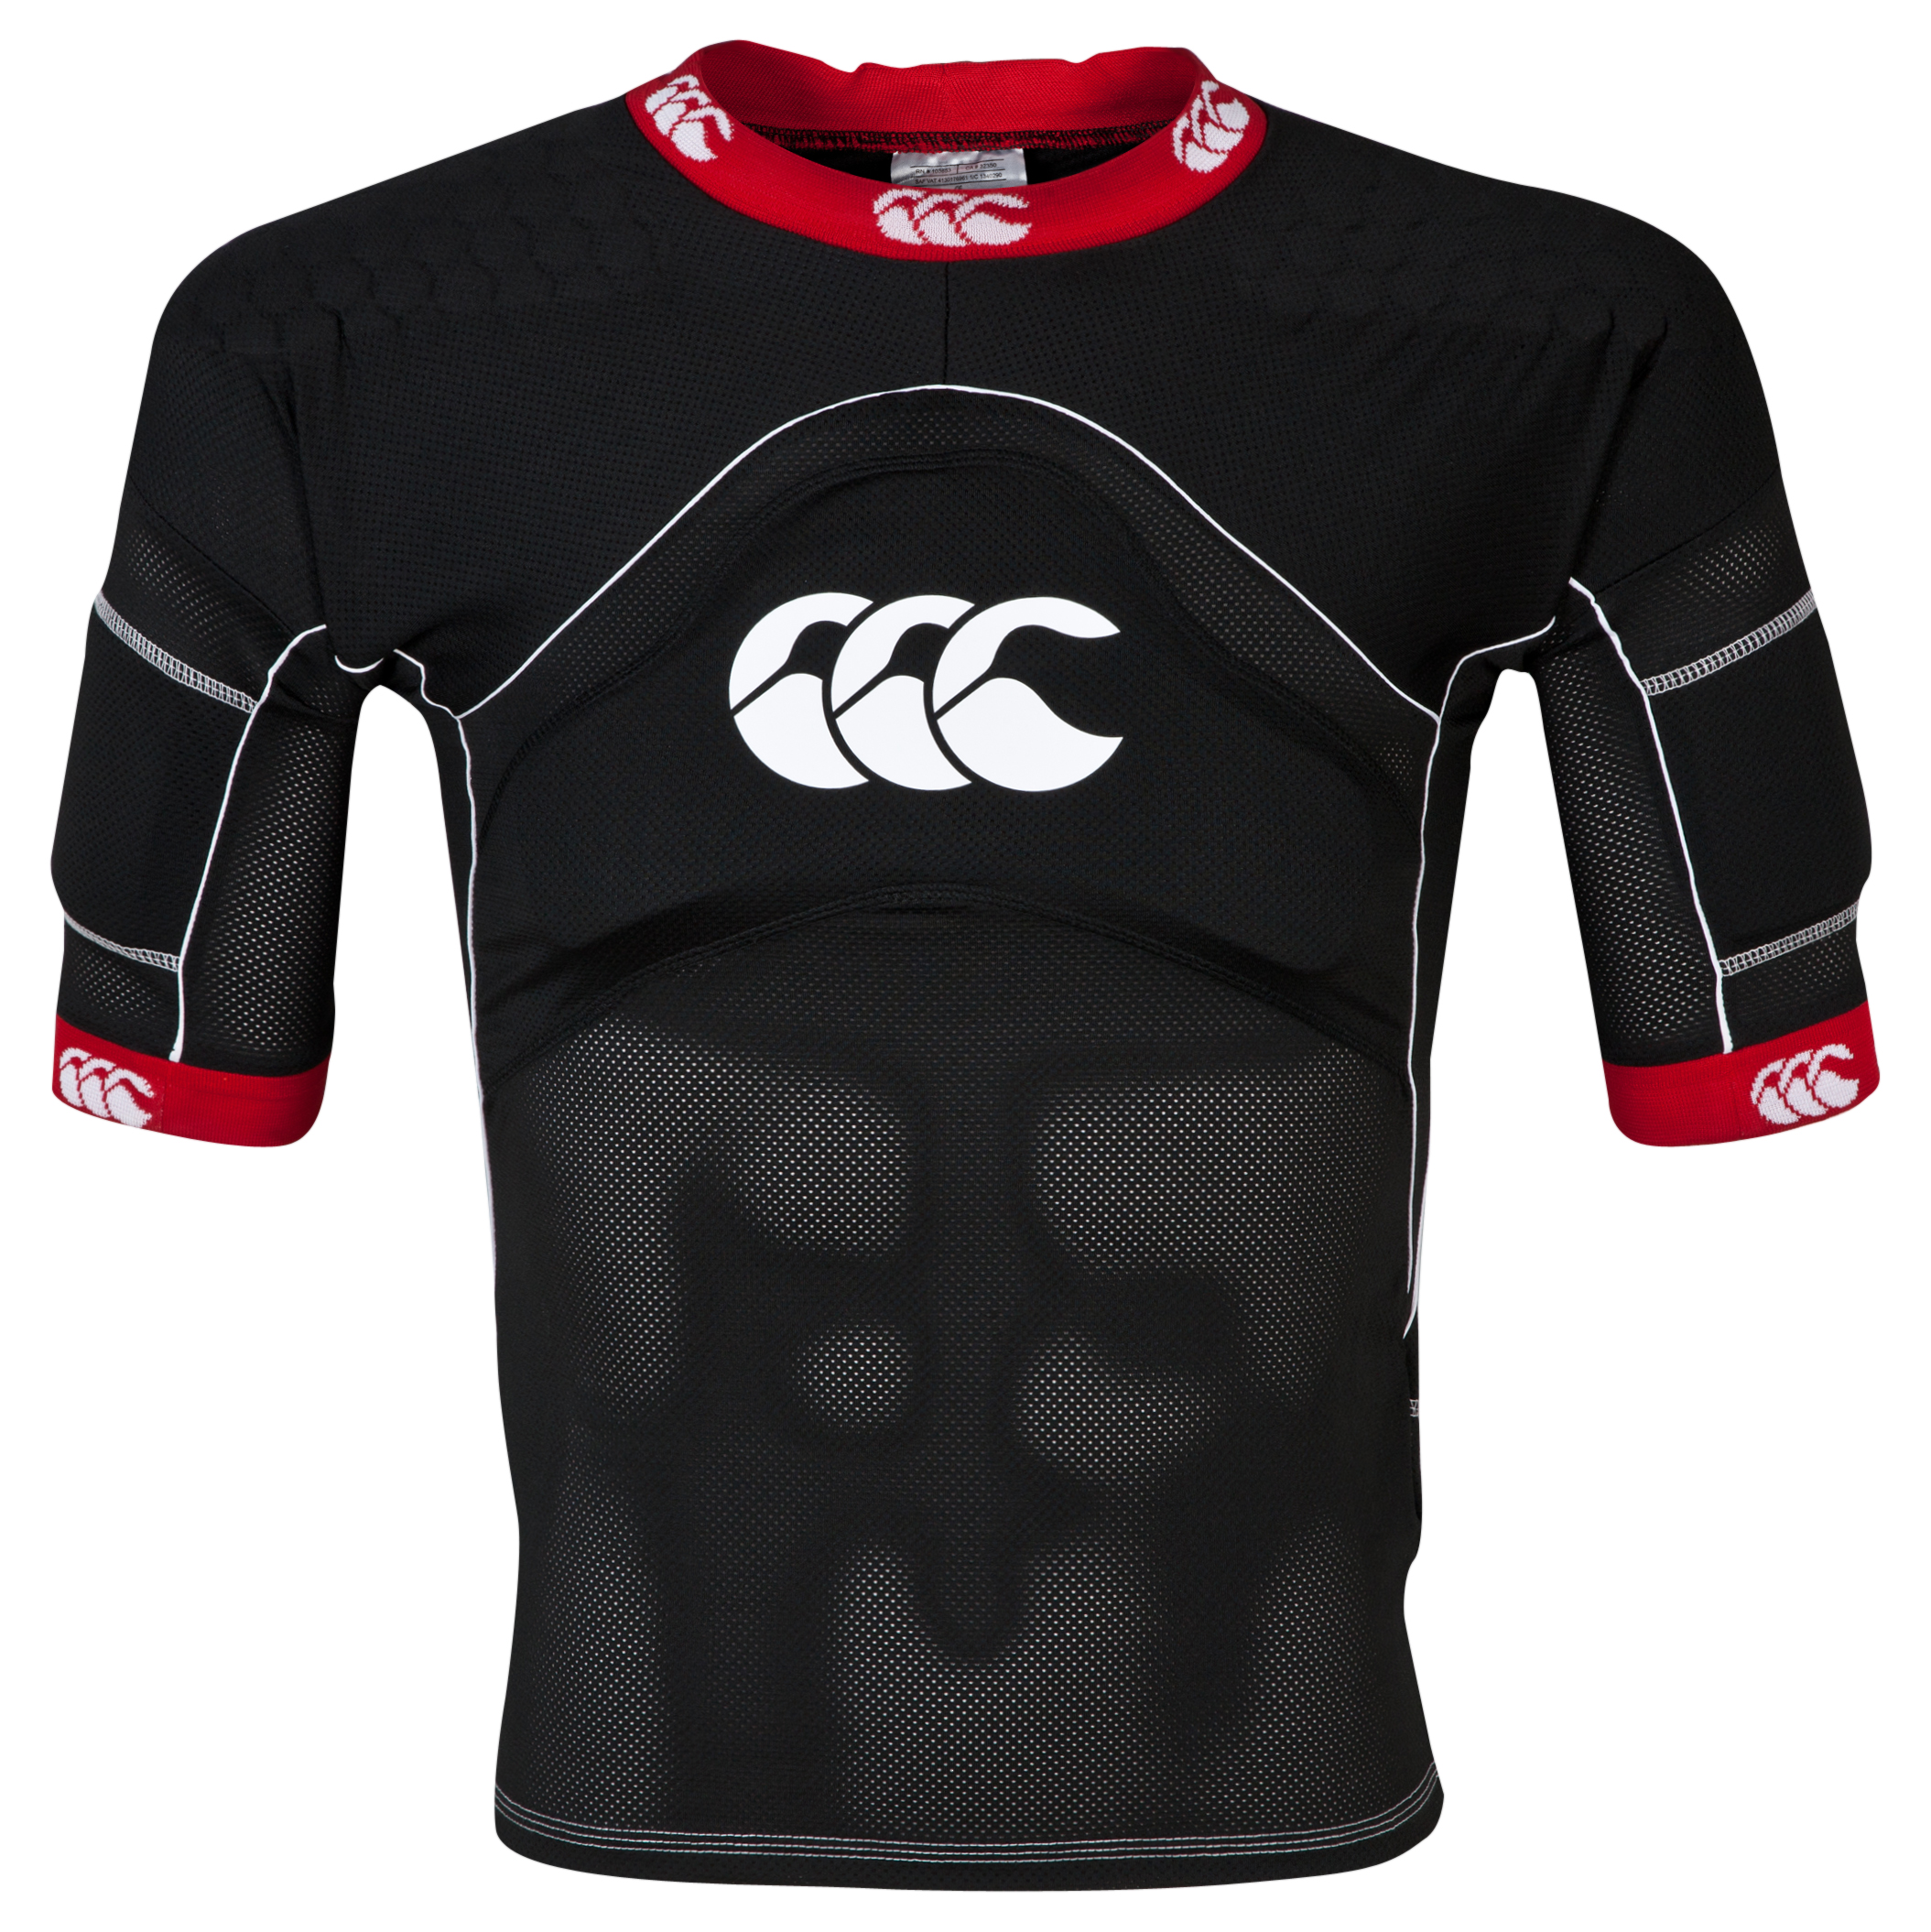 Canterbury Flexitop Plus Protective Top Black